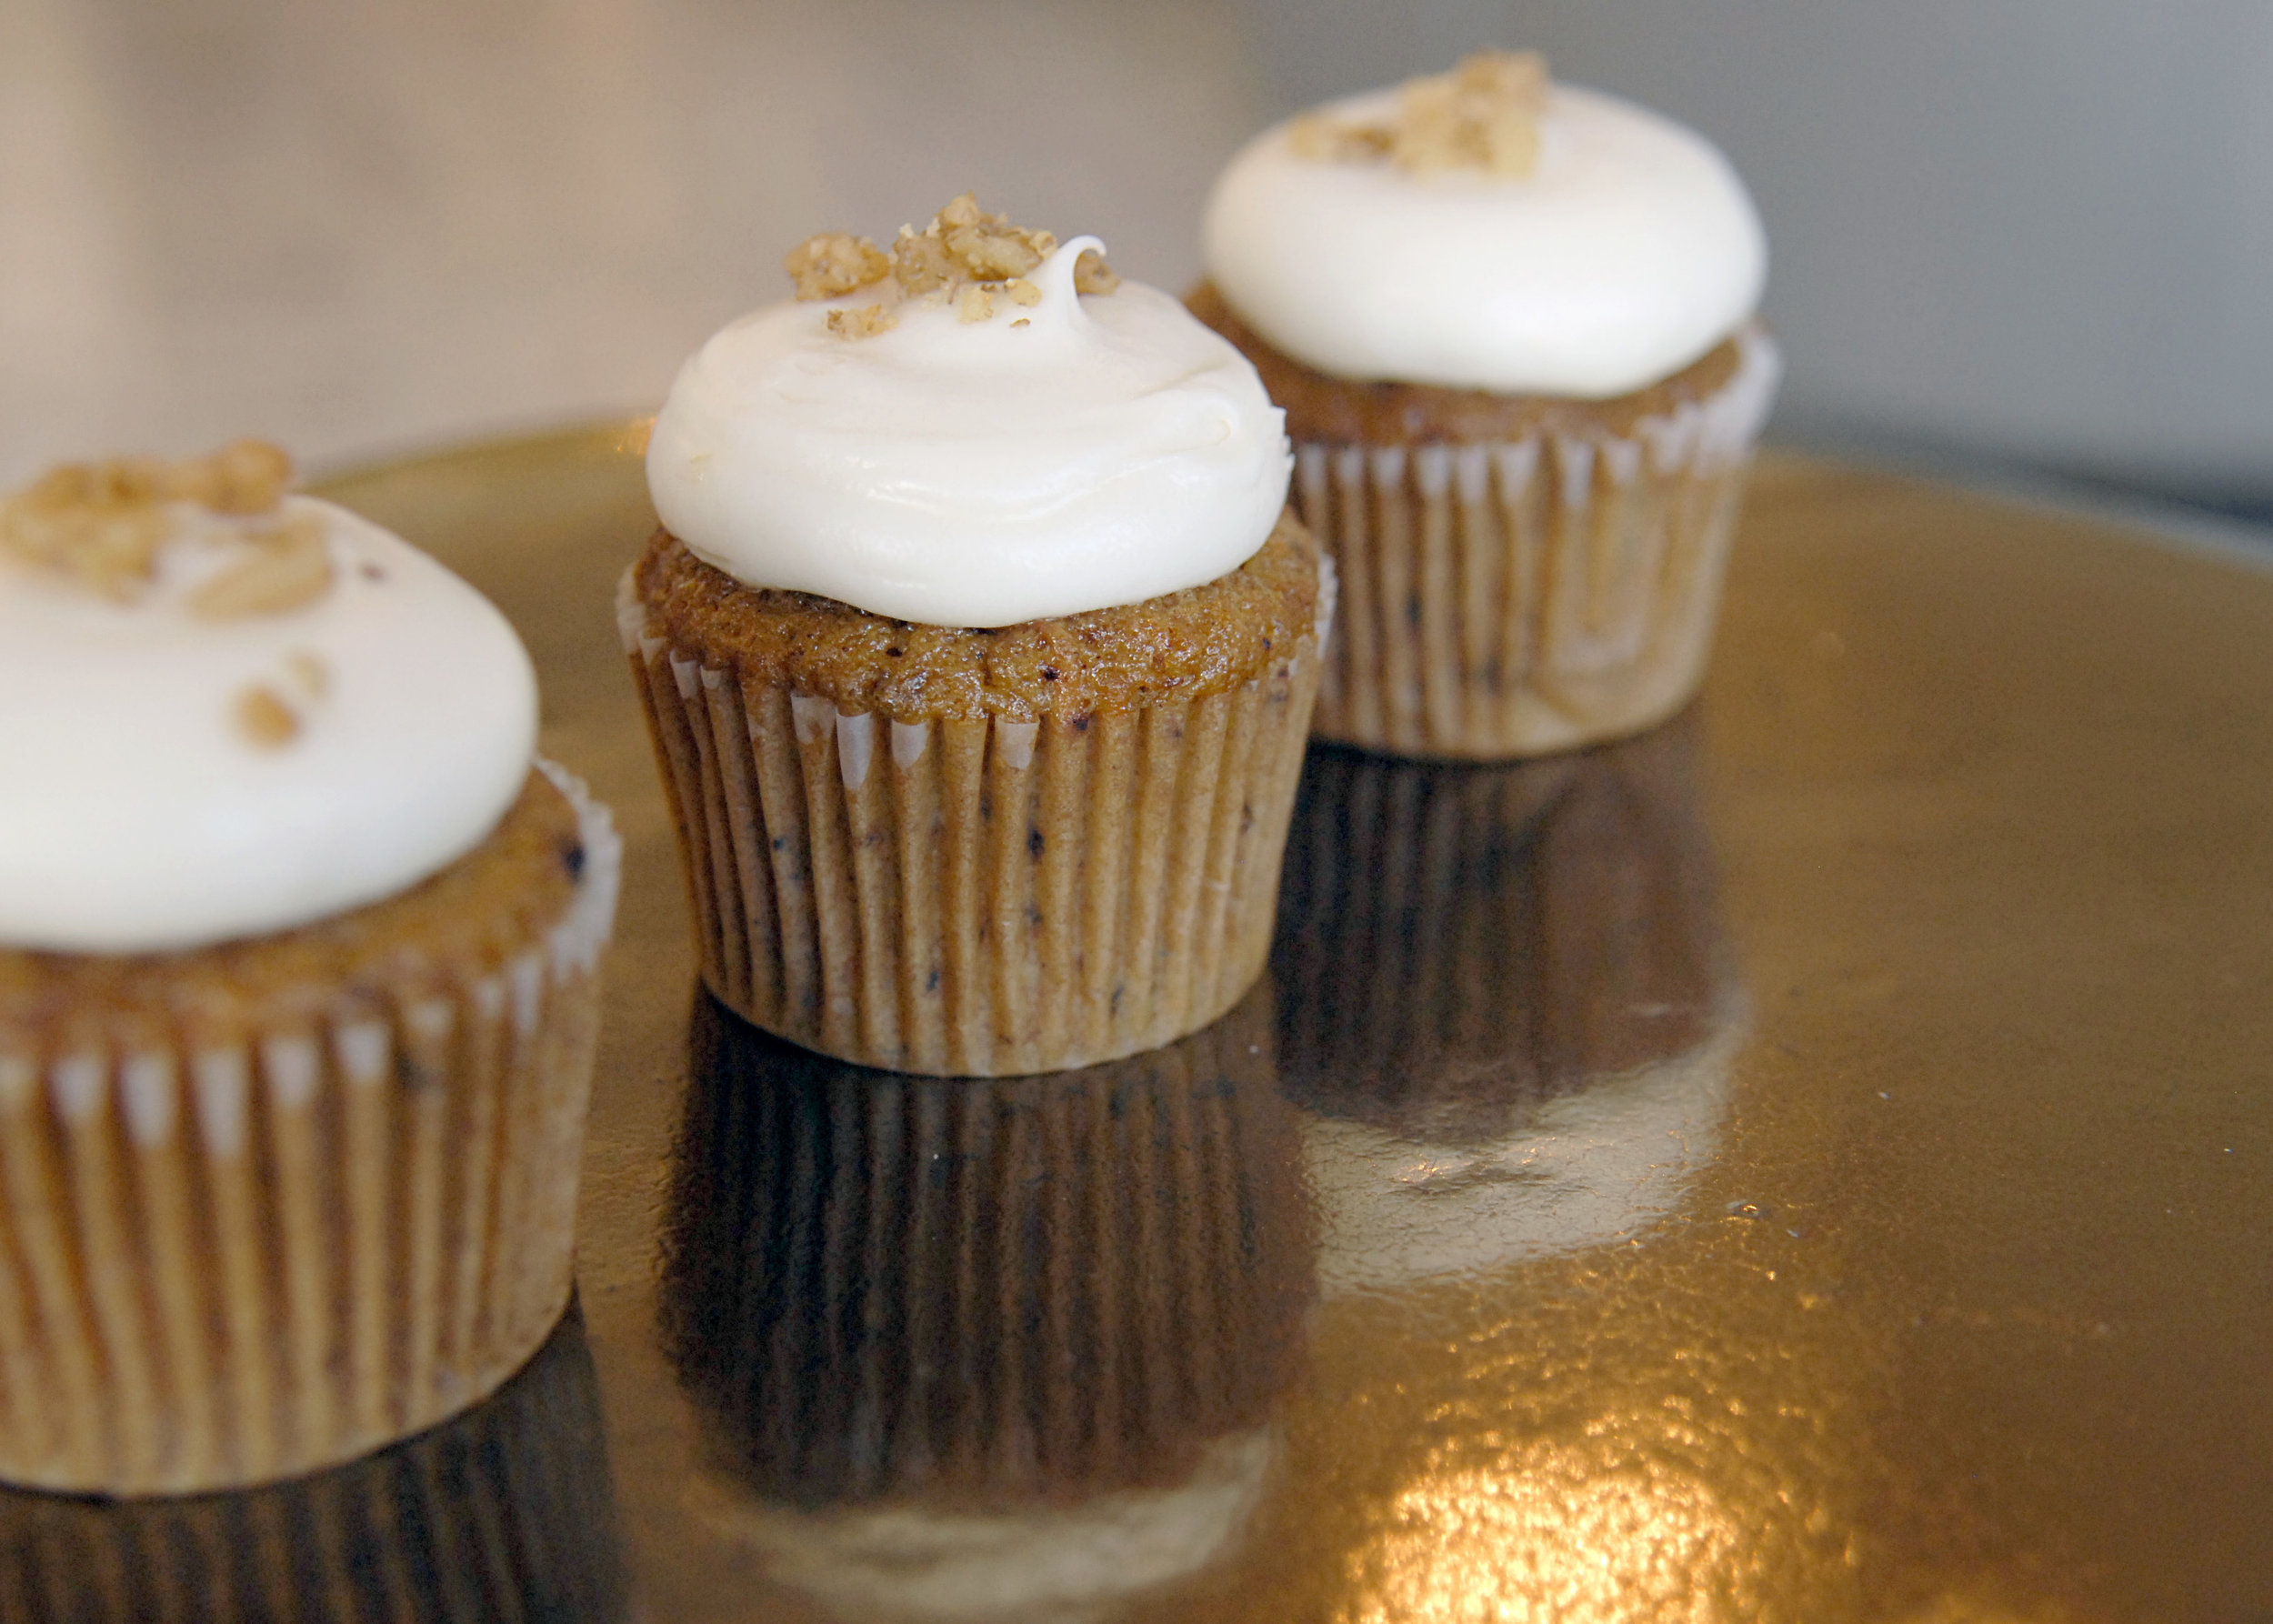 """18 Carat"" Cupcake   2.95 each  Made with grated organic carrots, pineapple, walnuts & spice. Our favorite carrot cake ... ever!"